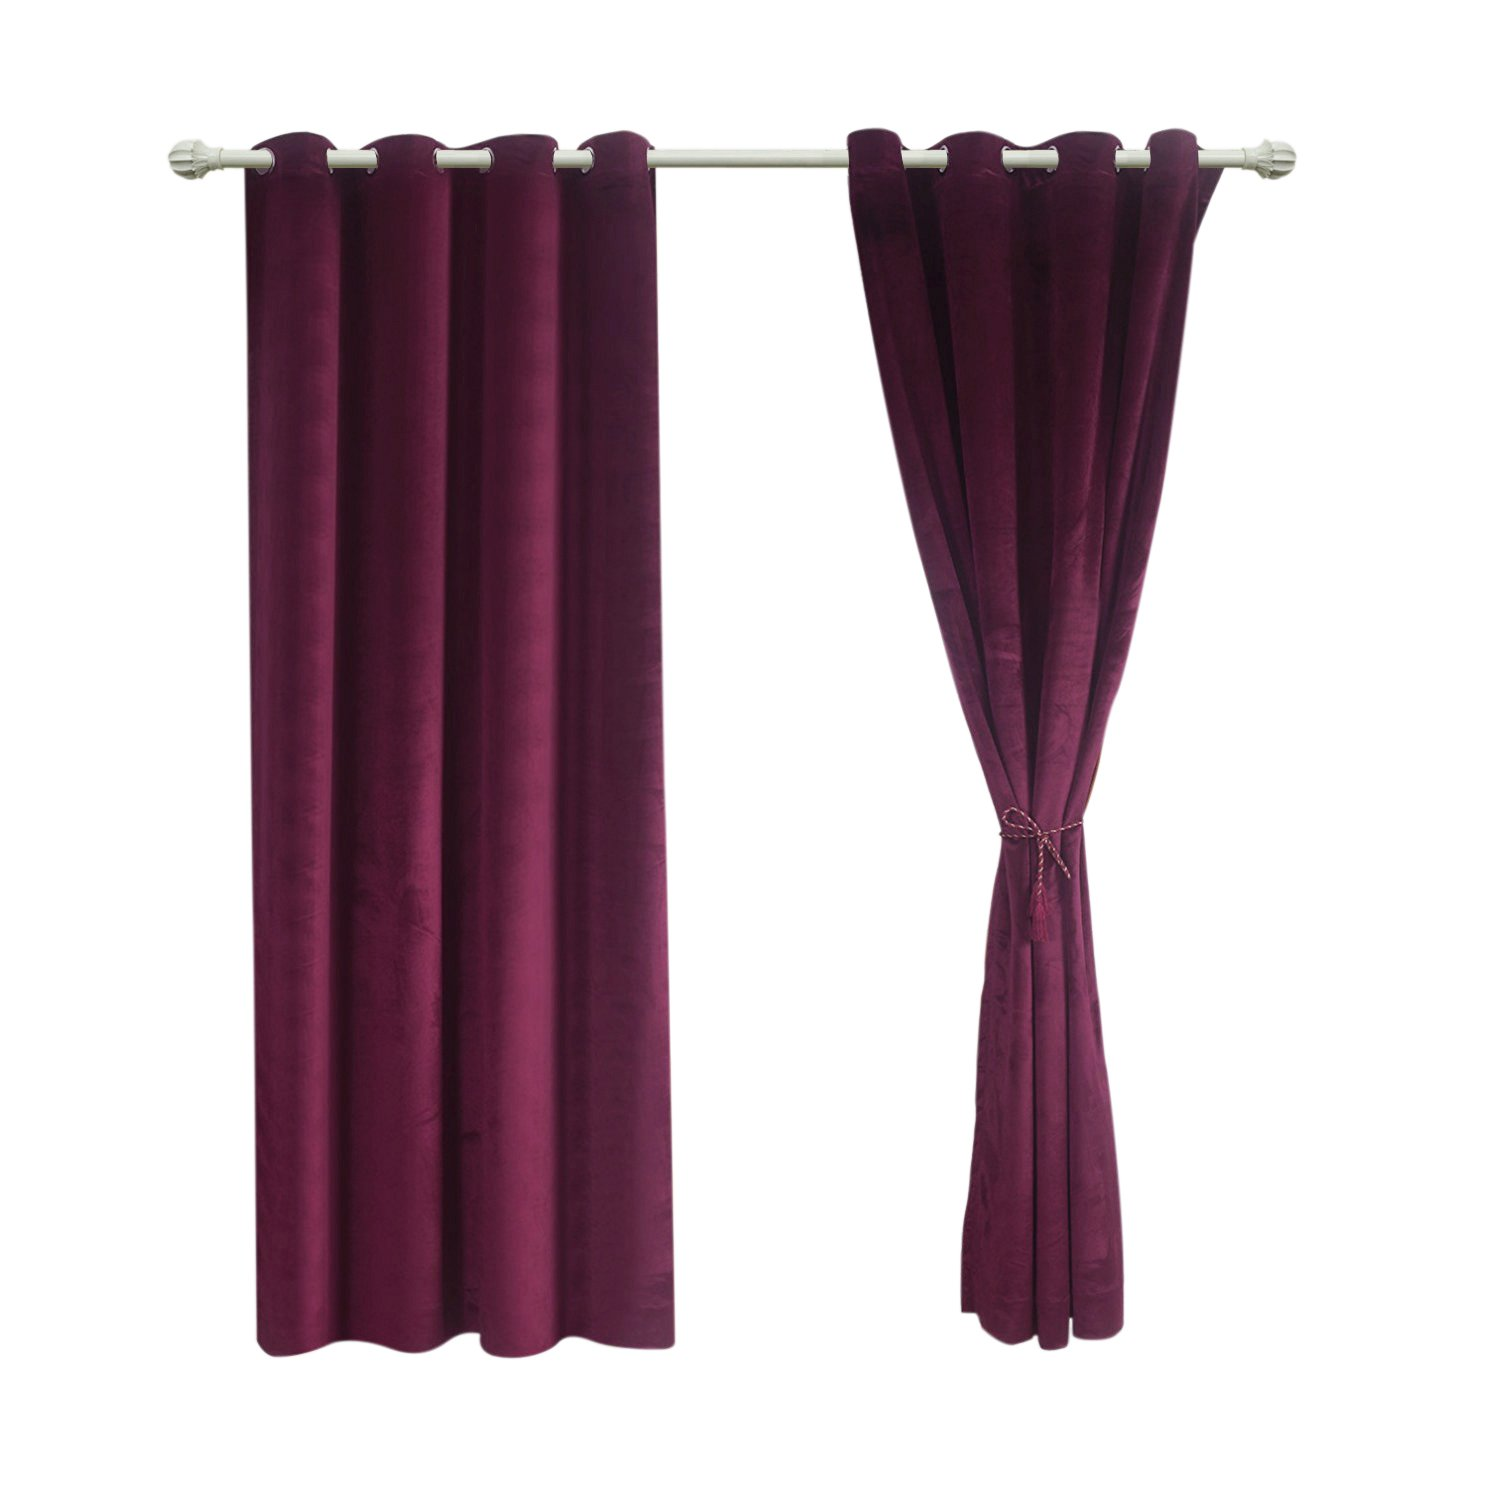 Sideli Solid Grommet Matt Heavy Velvet Curtain Drape Panel Blackout Super Soft in Theater| Bedroom| Living Room| Hotel 1 Piece (52-Inch-by-84-Inch, Purple)